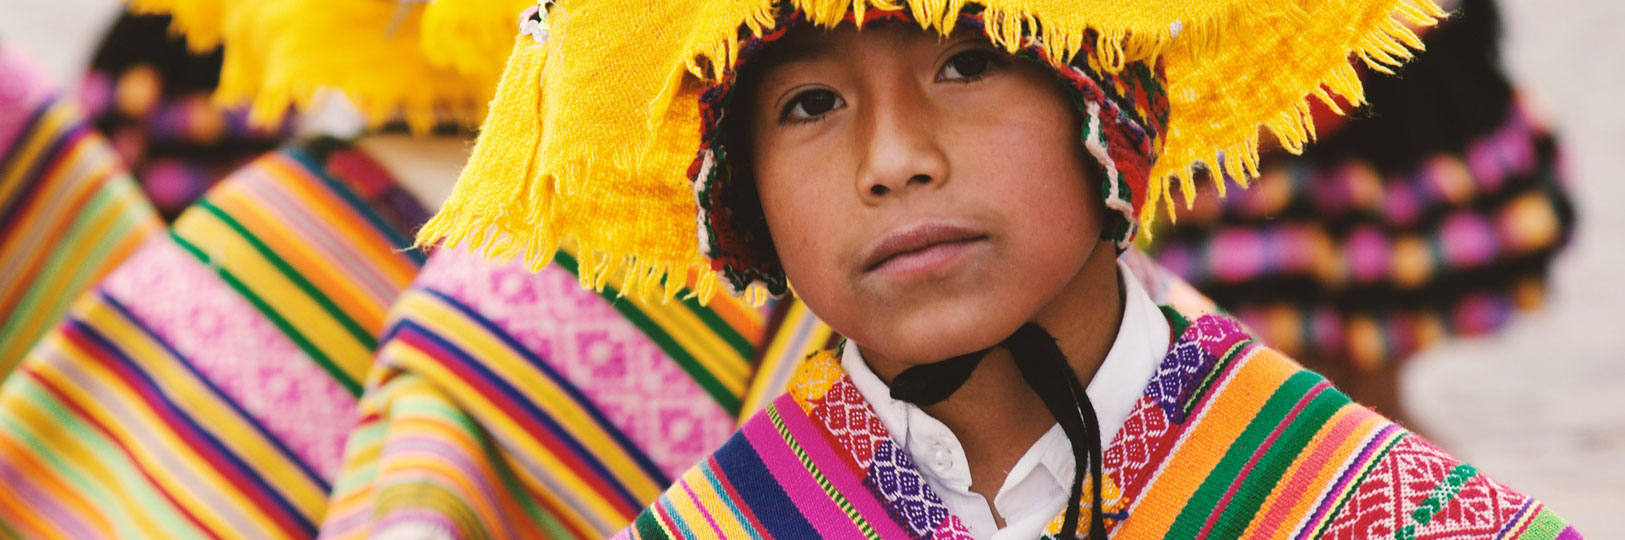 A child wearing traditional clothing